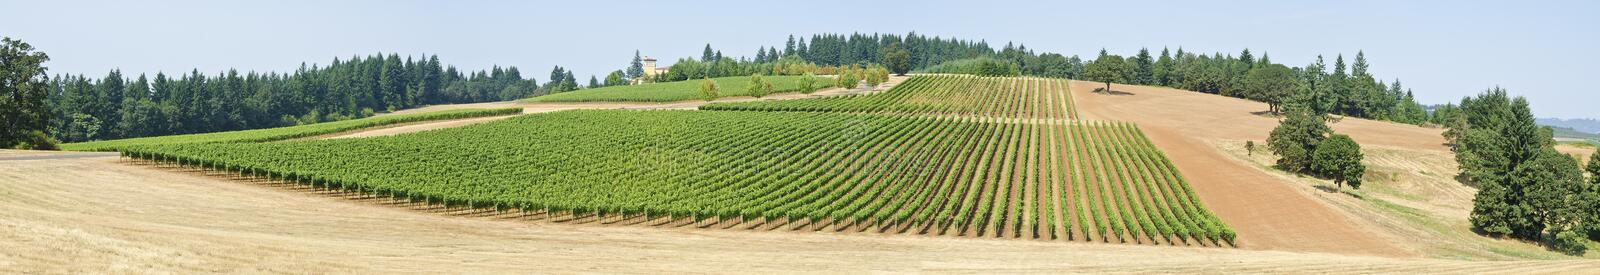 Download Panorama Of A Vineyard In Willamette Valley Stock Photo - Image of willamette, vineyard: 21283586